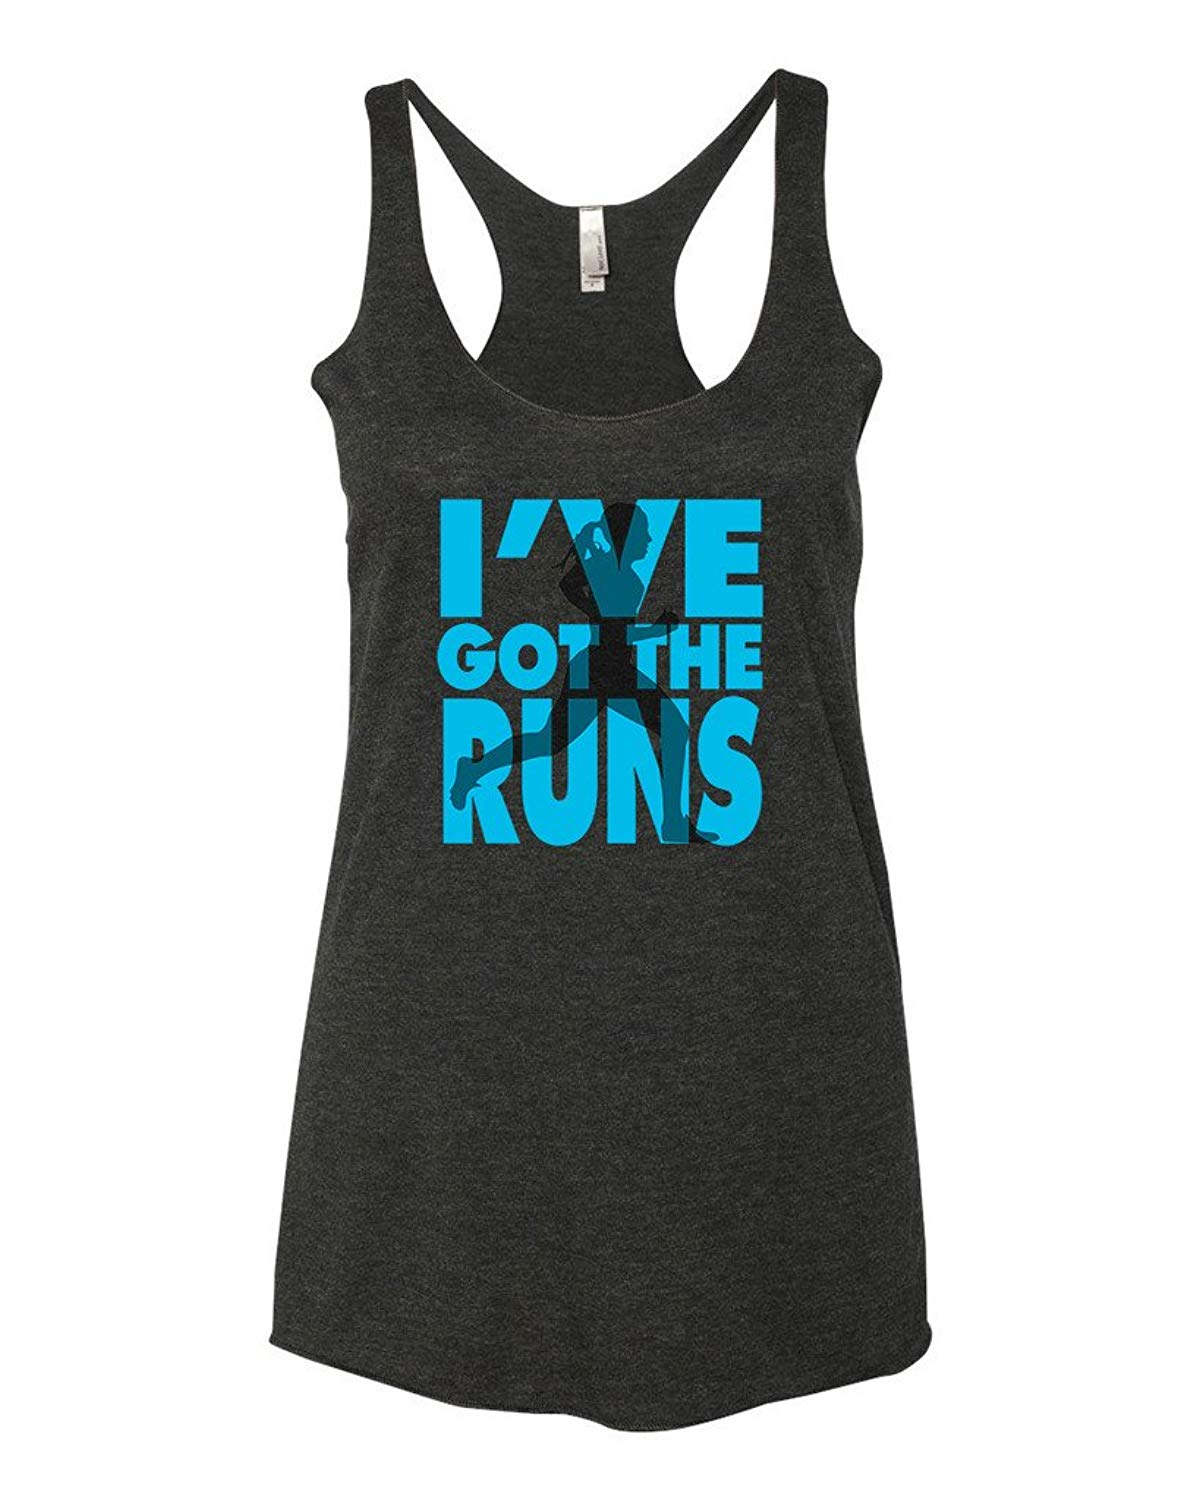 Funny runner tank top for cardio day